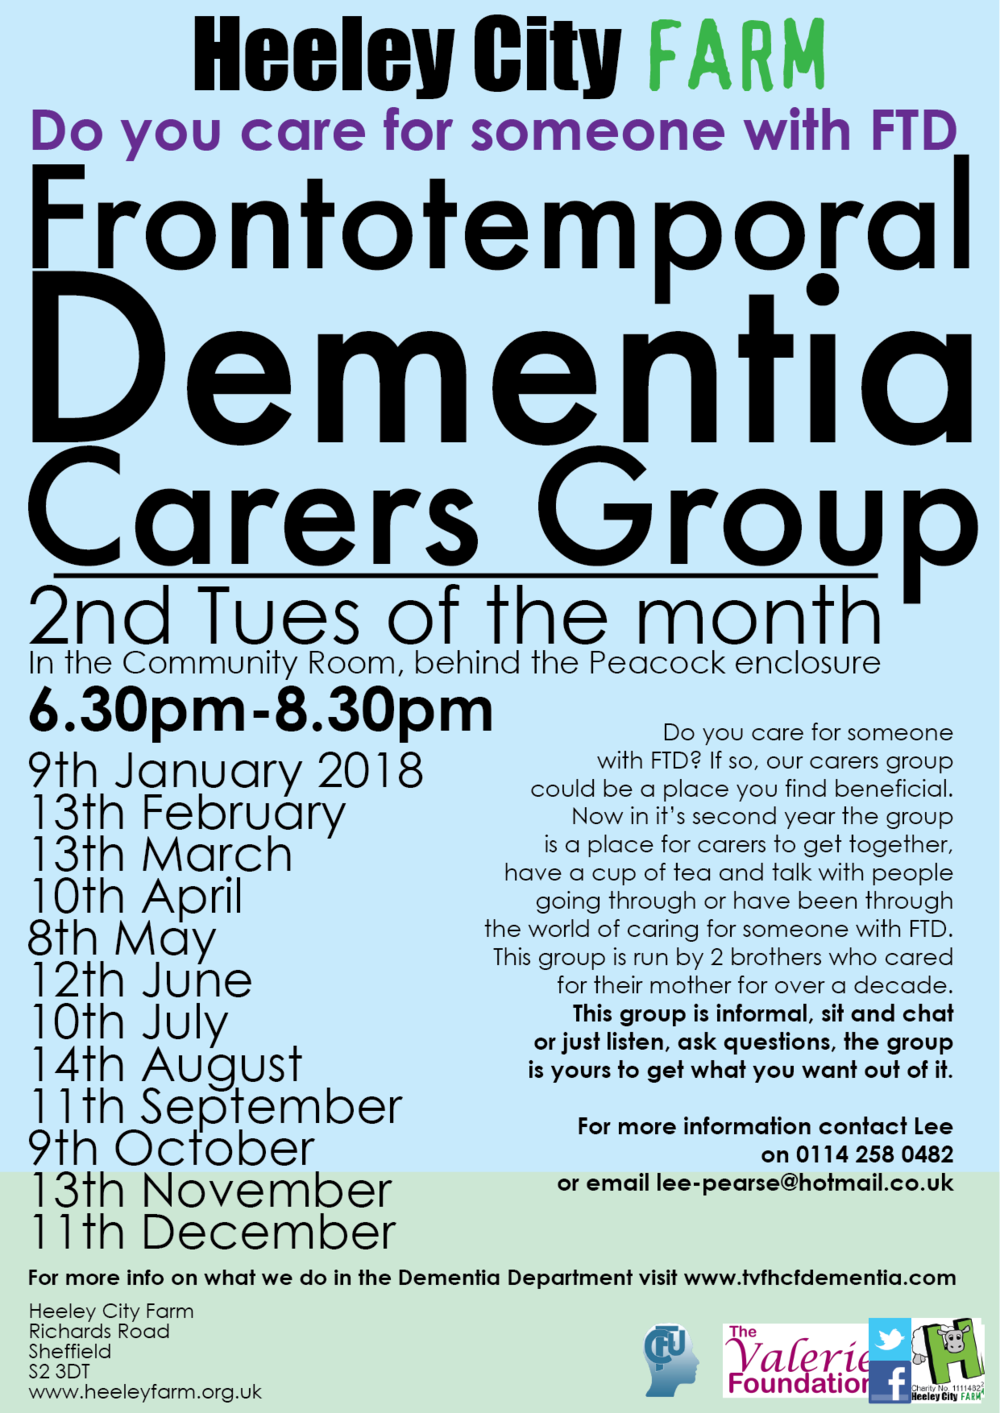 After the success of the first Frontotemporal Dementia Carers Group there are another four dates set for the upcoming months. Open to anyone who cares for someone with FTD, come to sit and chat or just listen to other carers